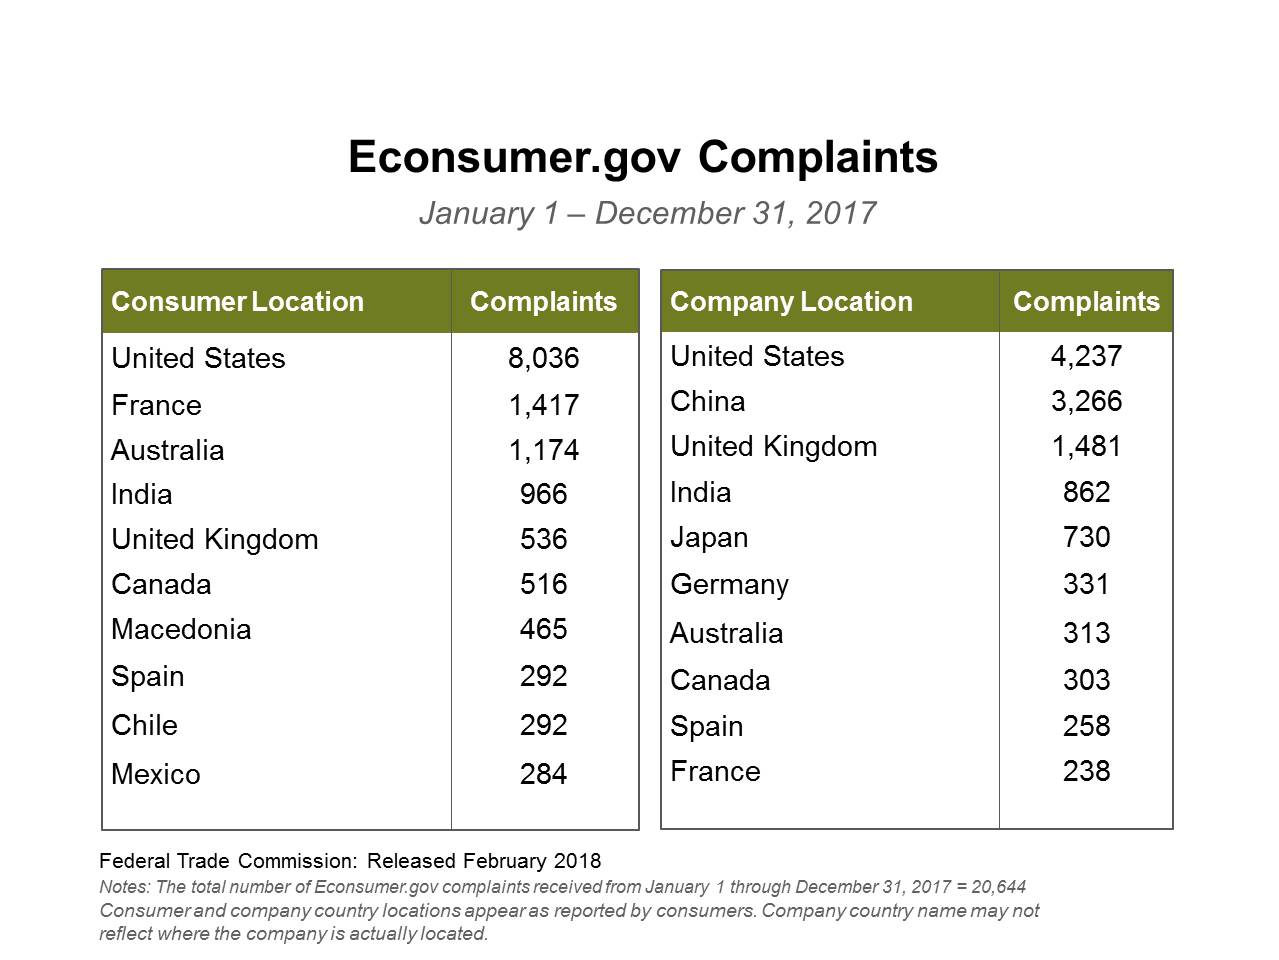 Top Consumer and Company Locations